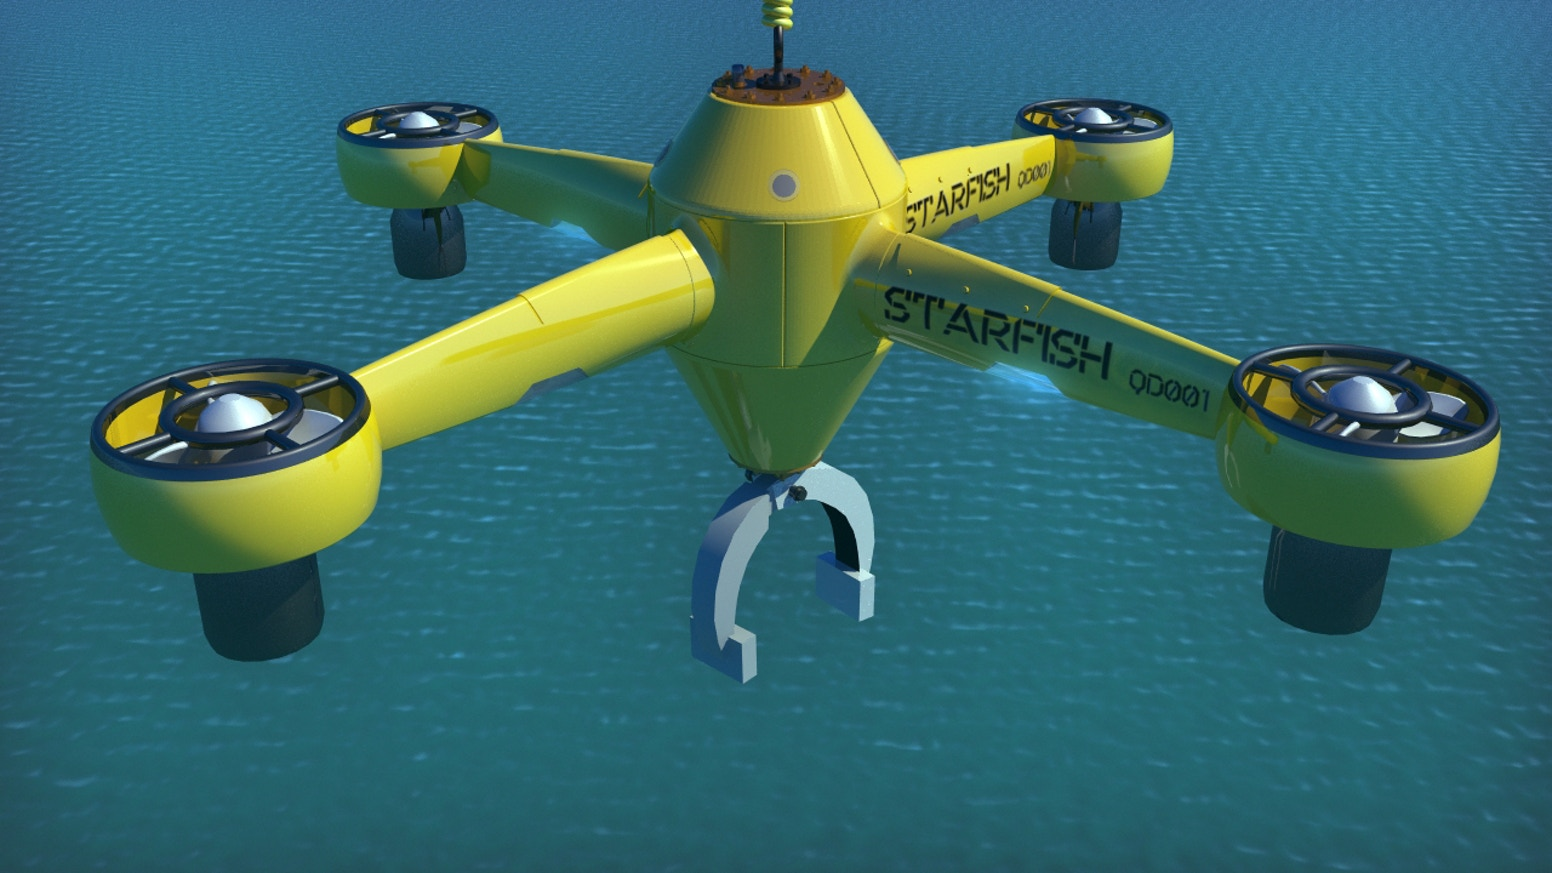 Starfish is an underwater tethered robot DRONE that can search, grapple and retrieve objects from lake, river and ocean floor.